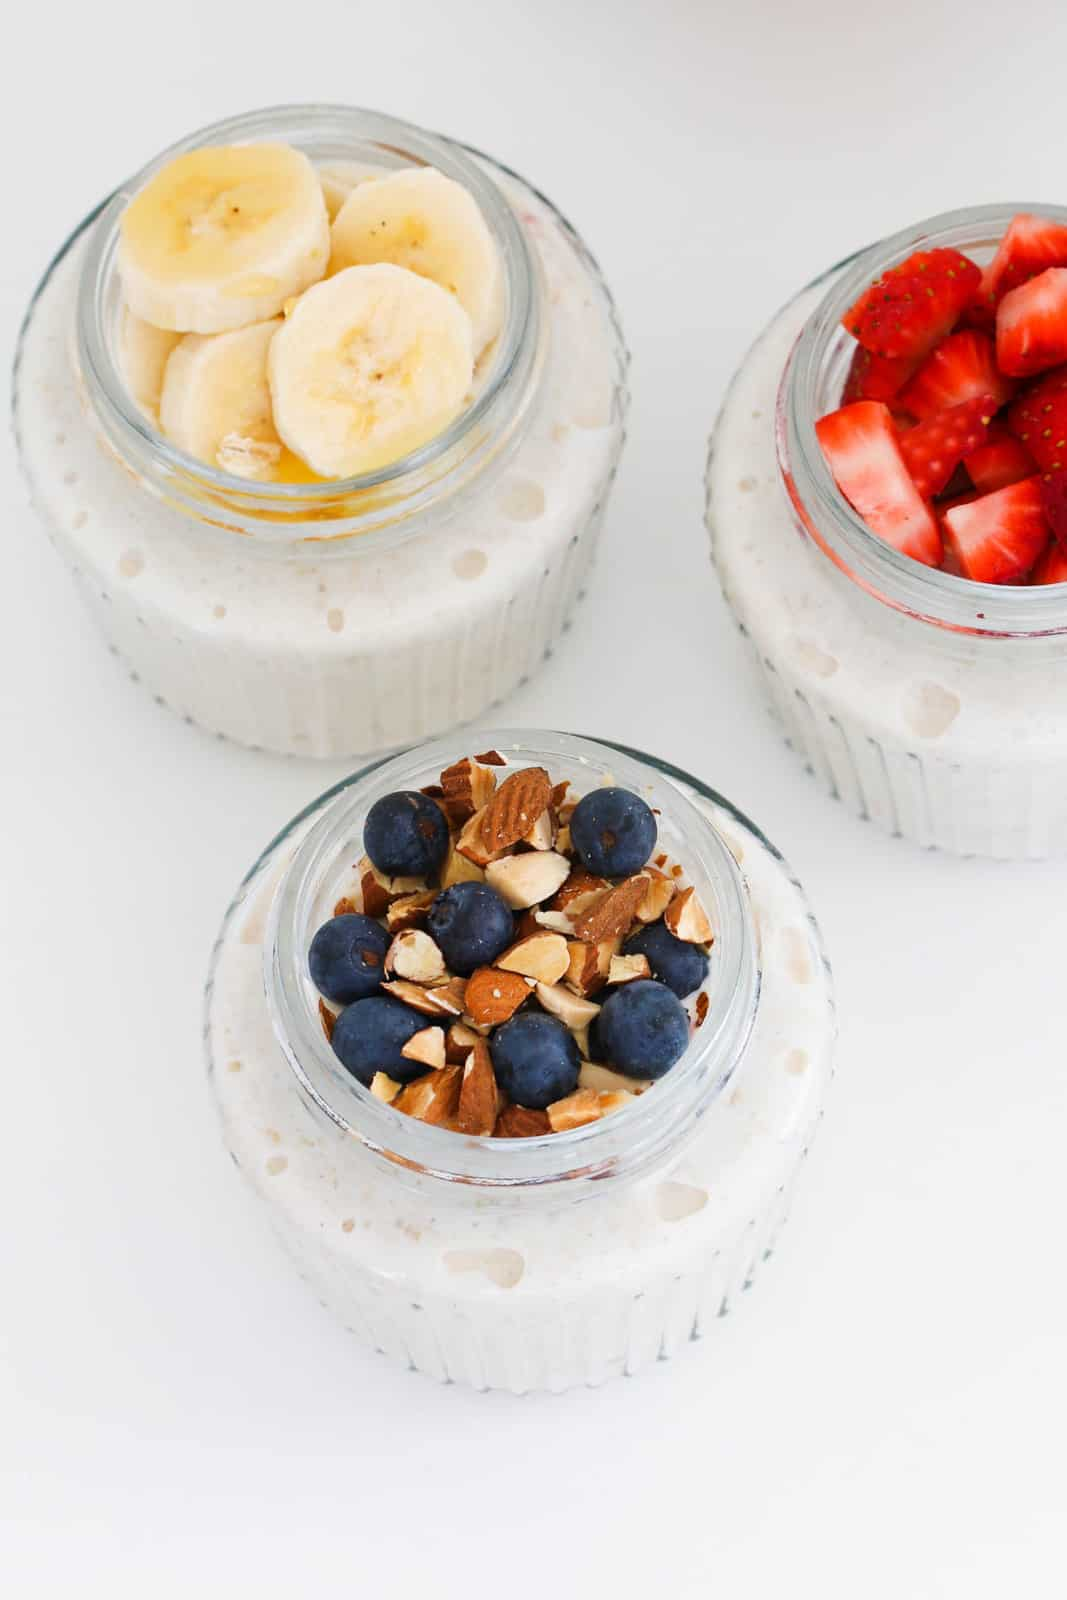 3 small glass pots filled with overnight oats and topped with fresh fruit and nuts.